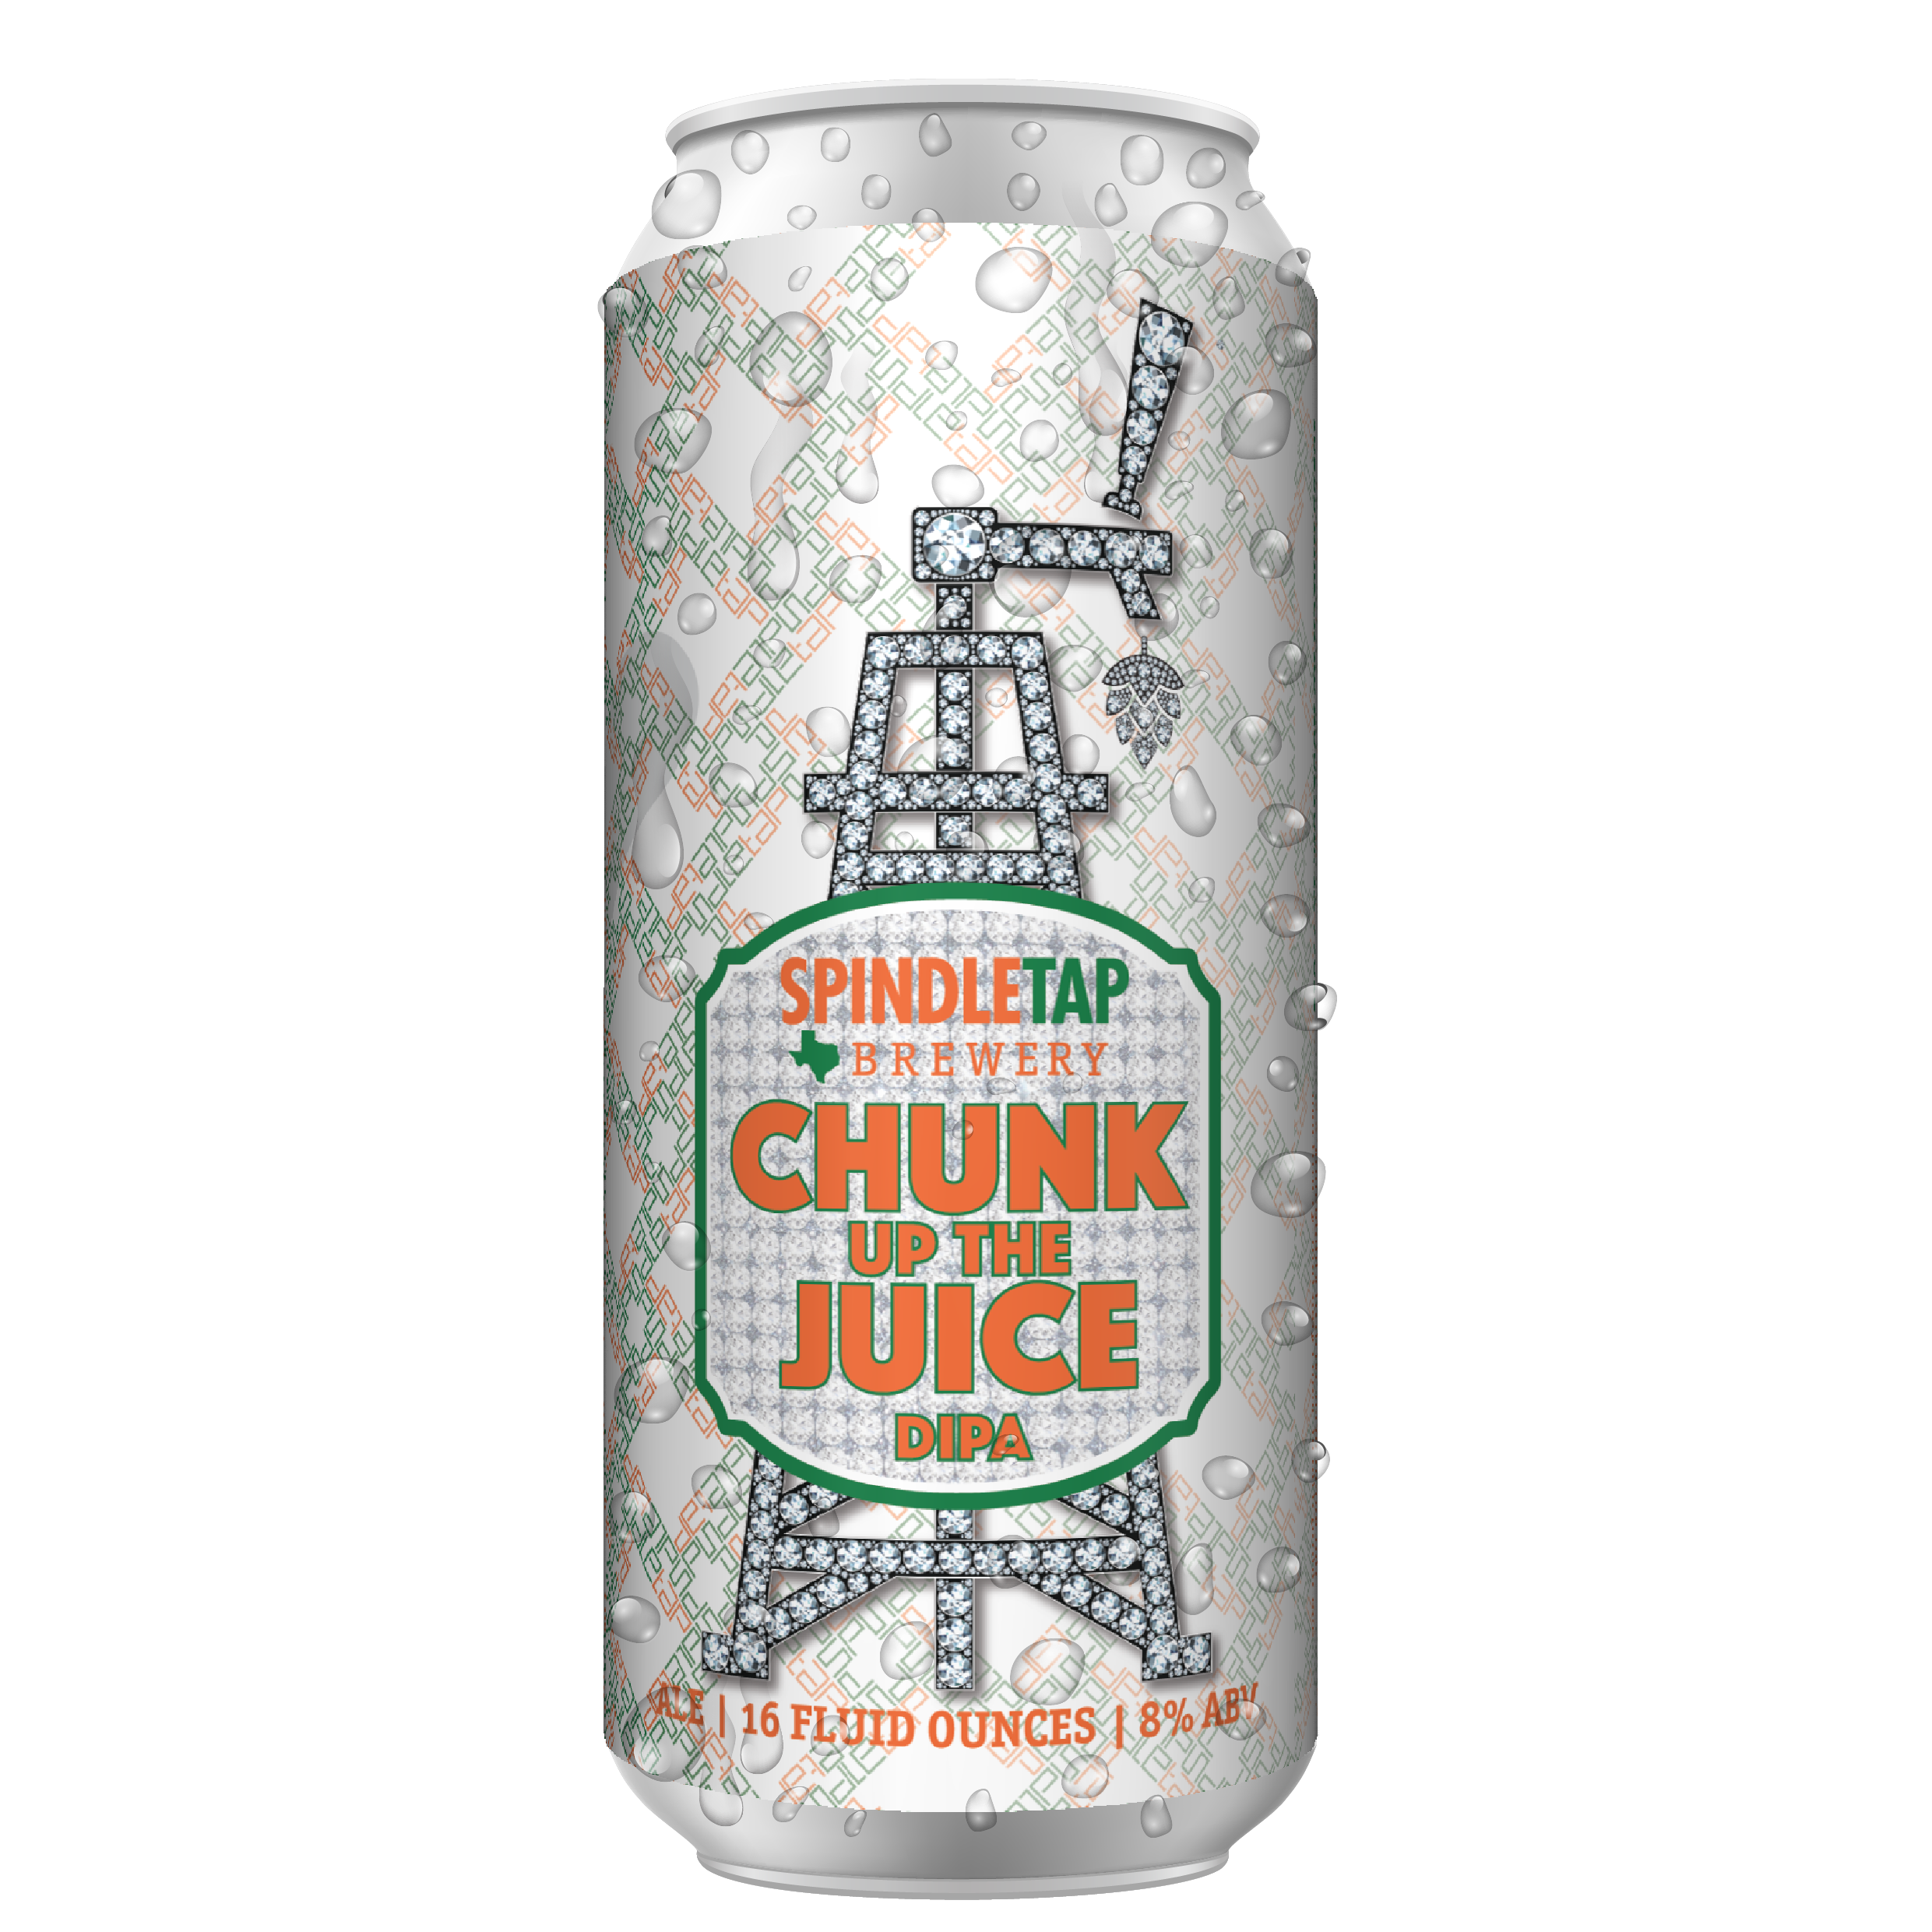 Chunk Up The Juice - DIPA